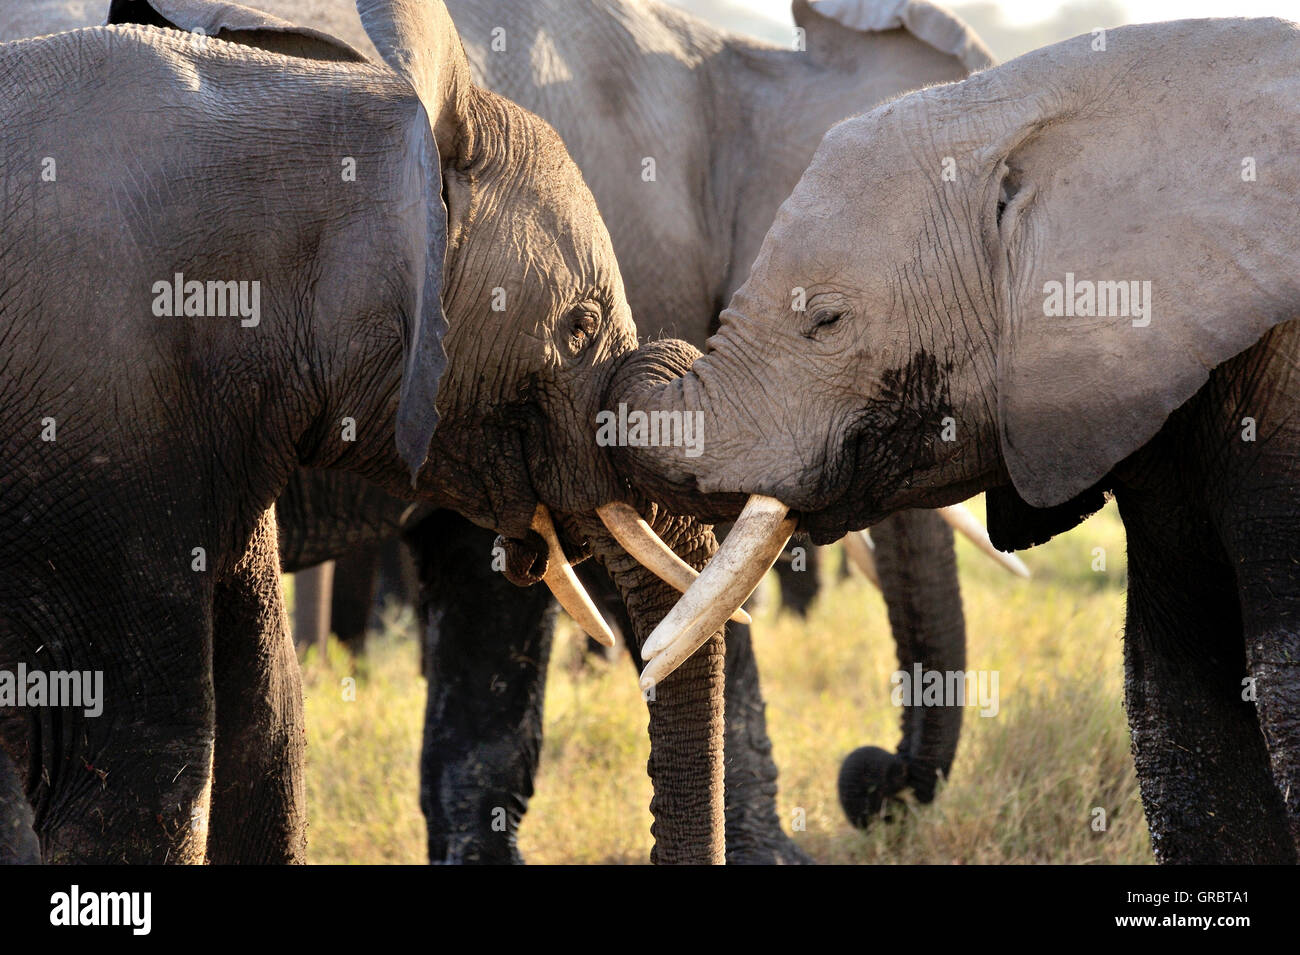 Playful And Tenderly Young Elephants In Amboseli National Parc - Stock Image